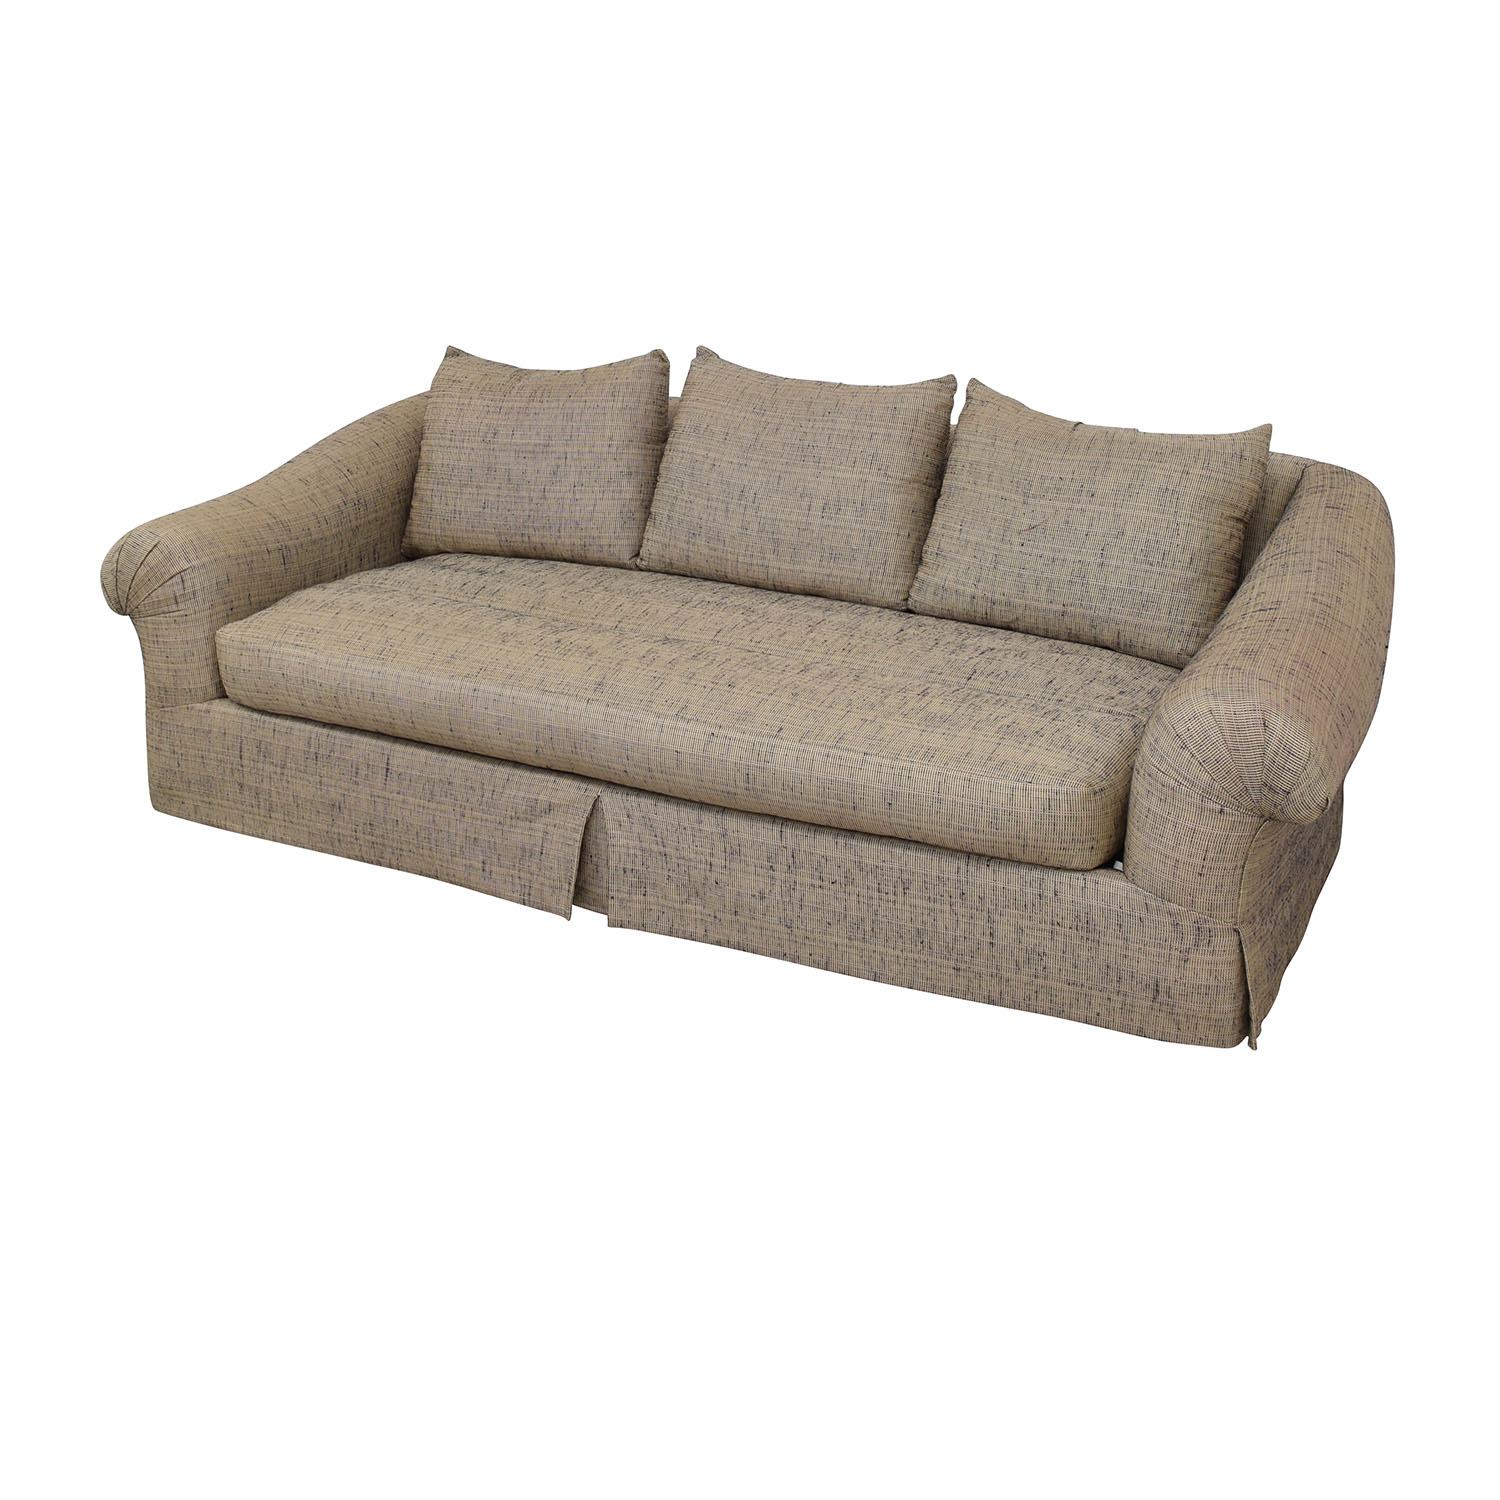 Awesome 90 Off Bernhardt Bernhardt Flair Collection Single Cushion Sofa Sofas Caraccident5 Cool Chair Designs And Ideas Caraccident5Info